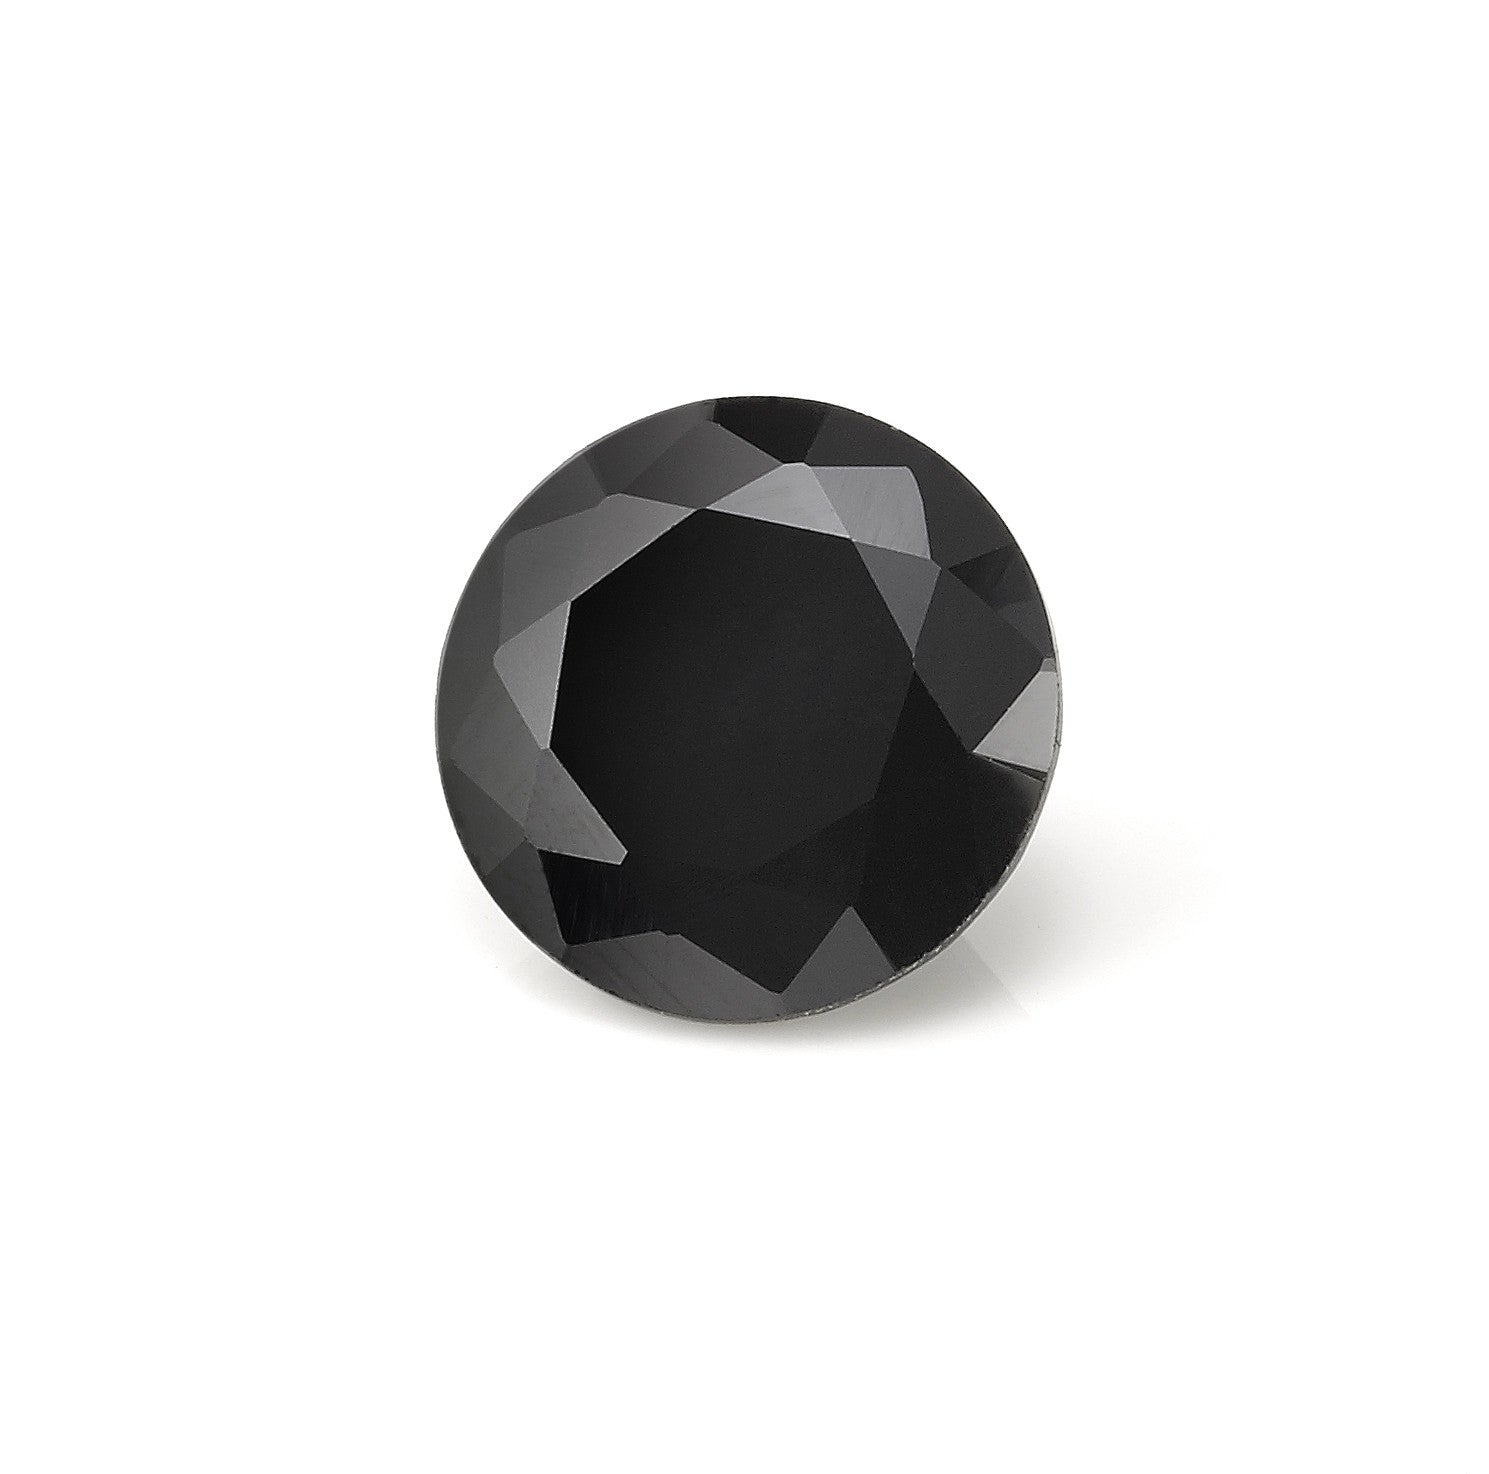 Black Spinel Gem - pair with matching stone earrings.